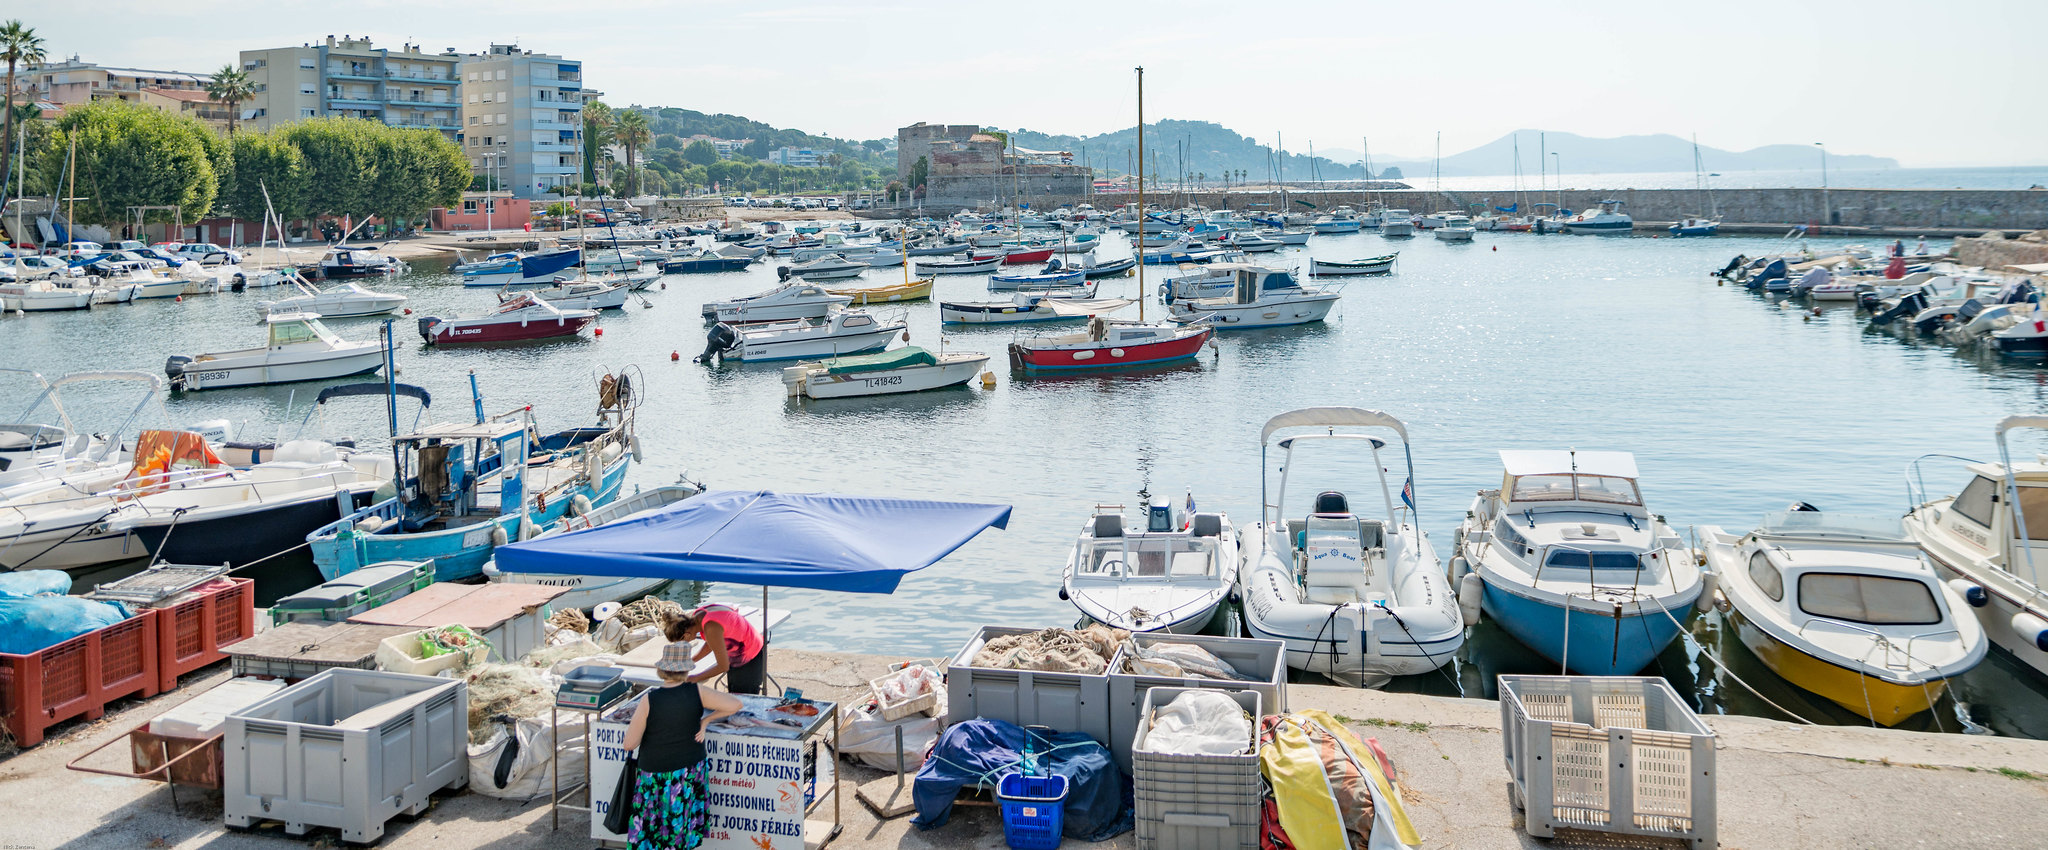 Woman buying fish at the boat pier in southern France